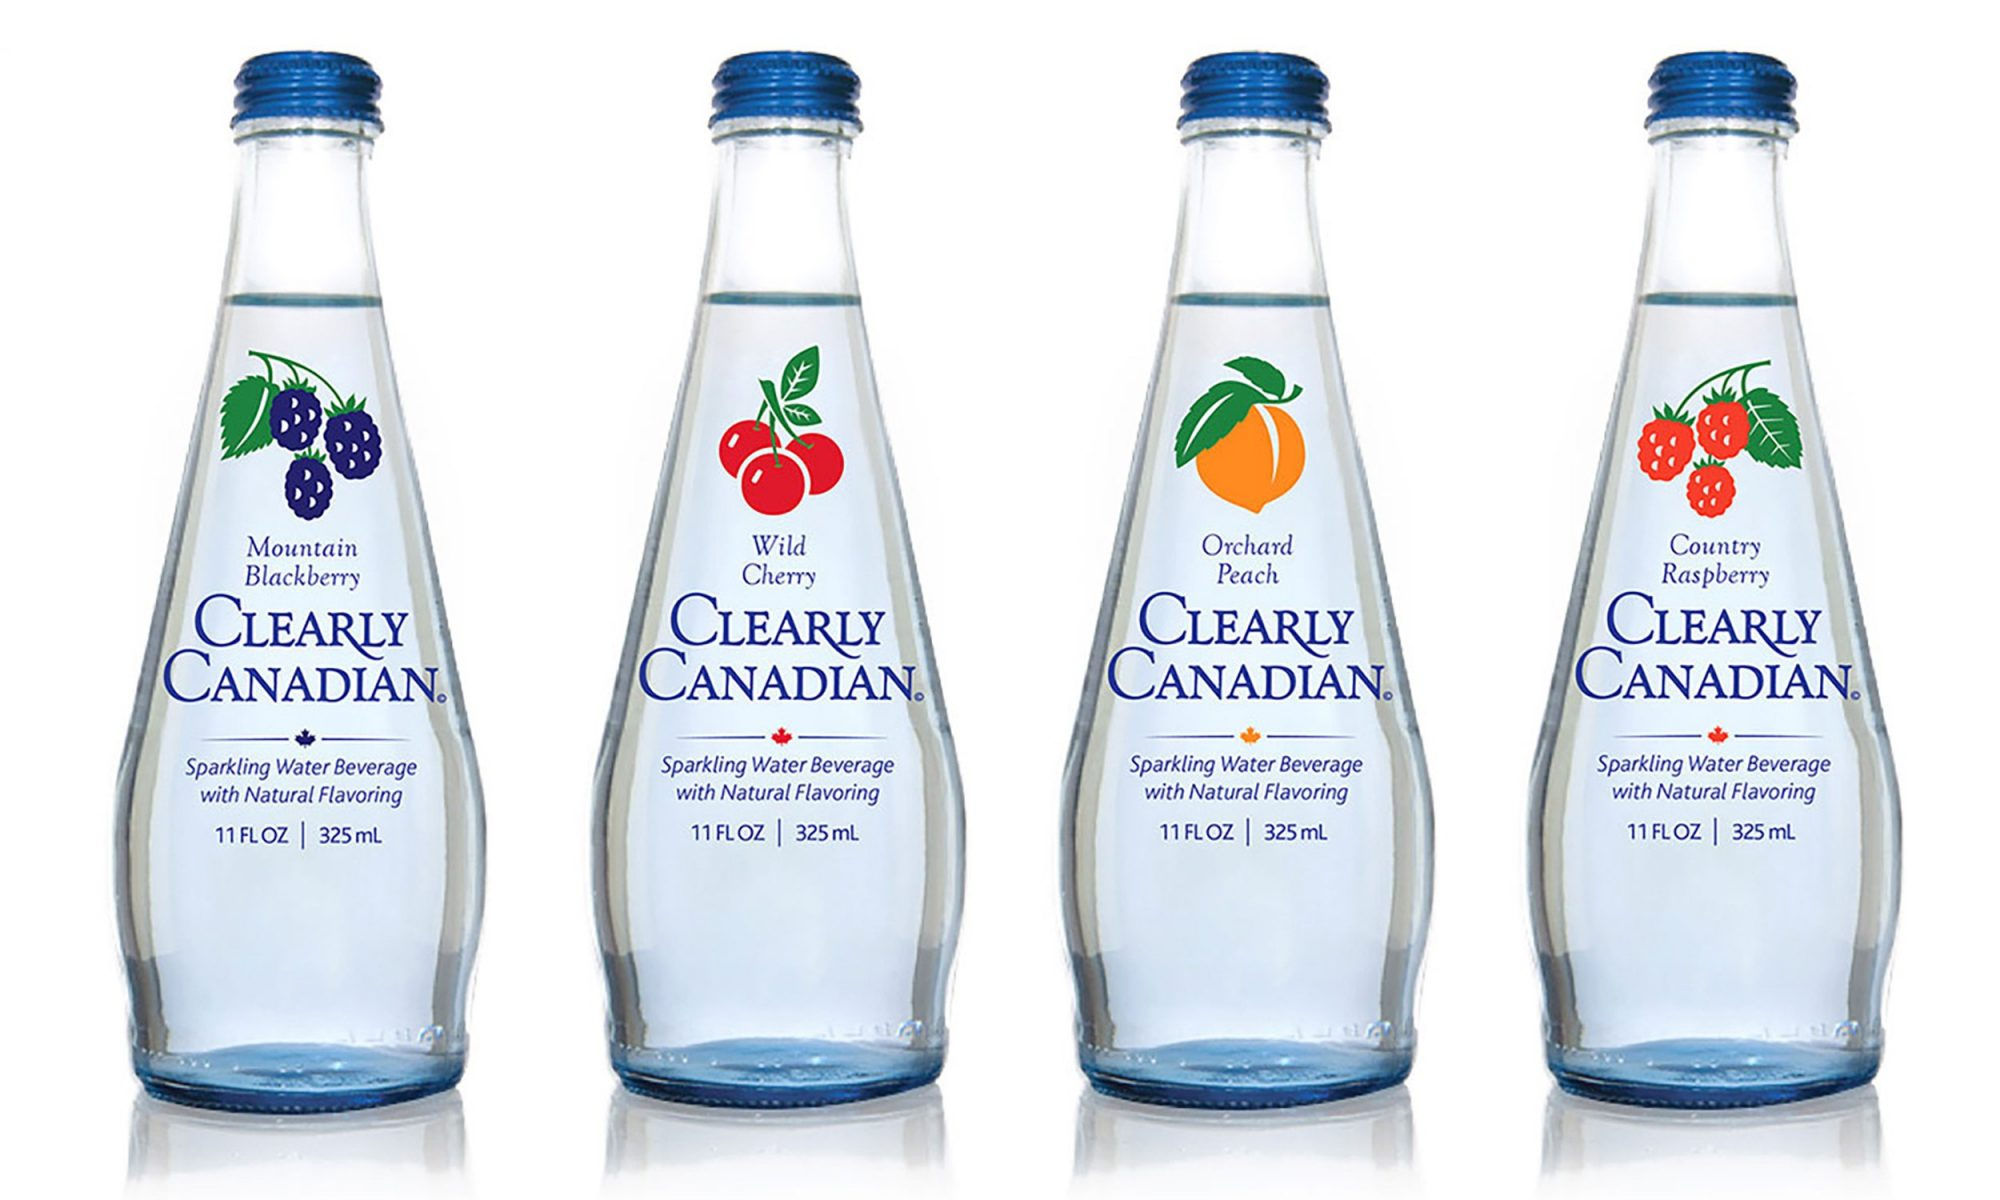 EC: The Clearly Canadian Crowdfunded Comeback Is Not Going Well